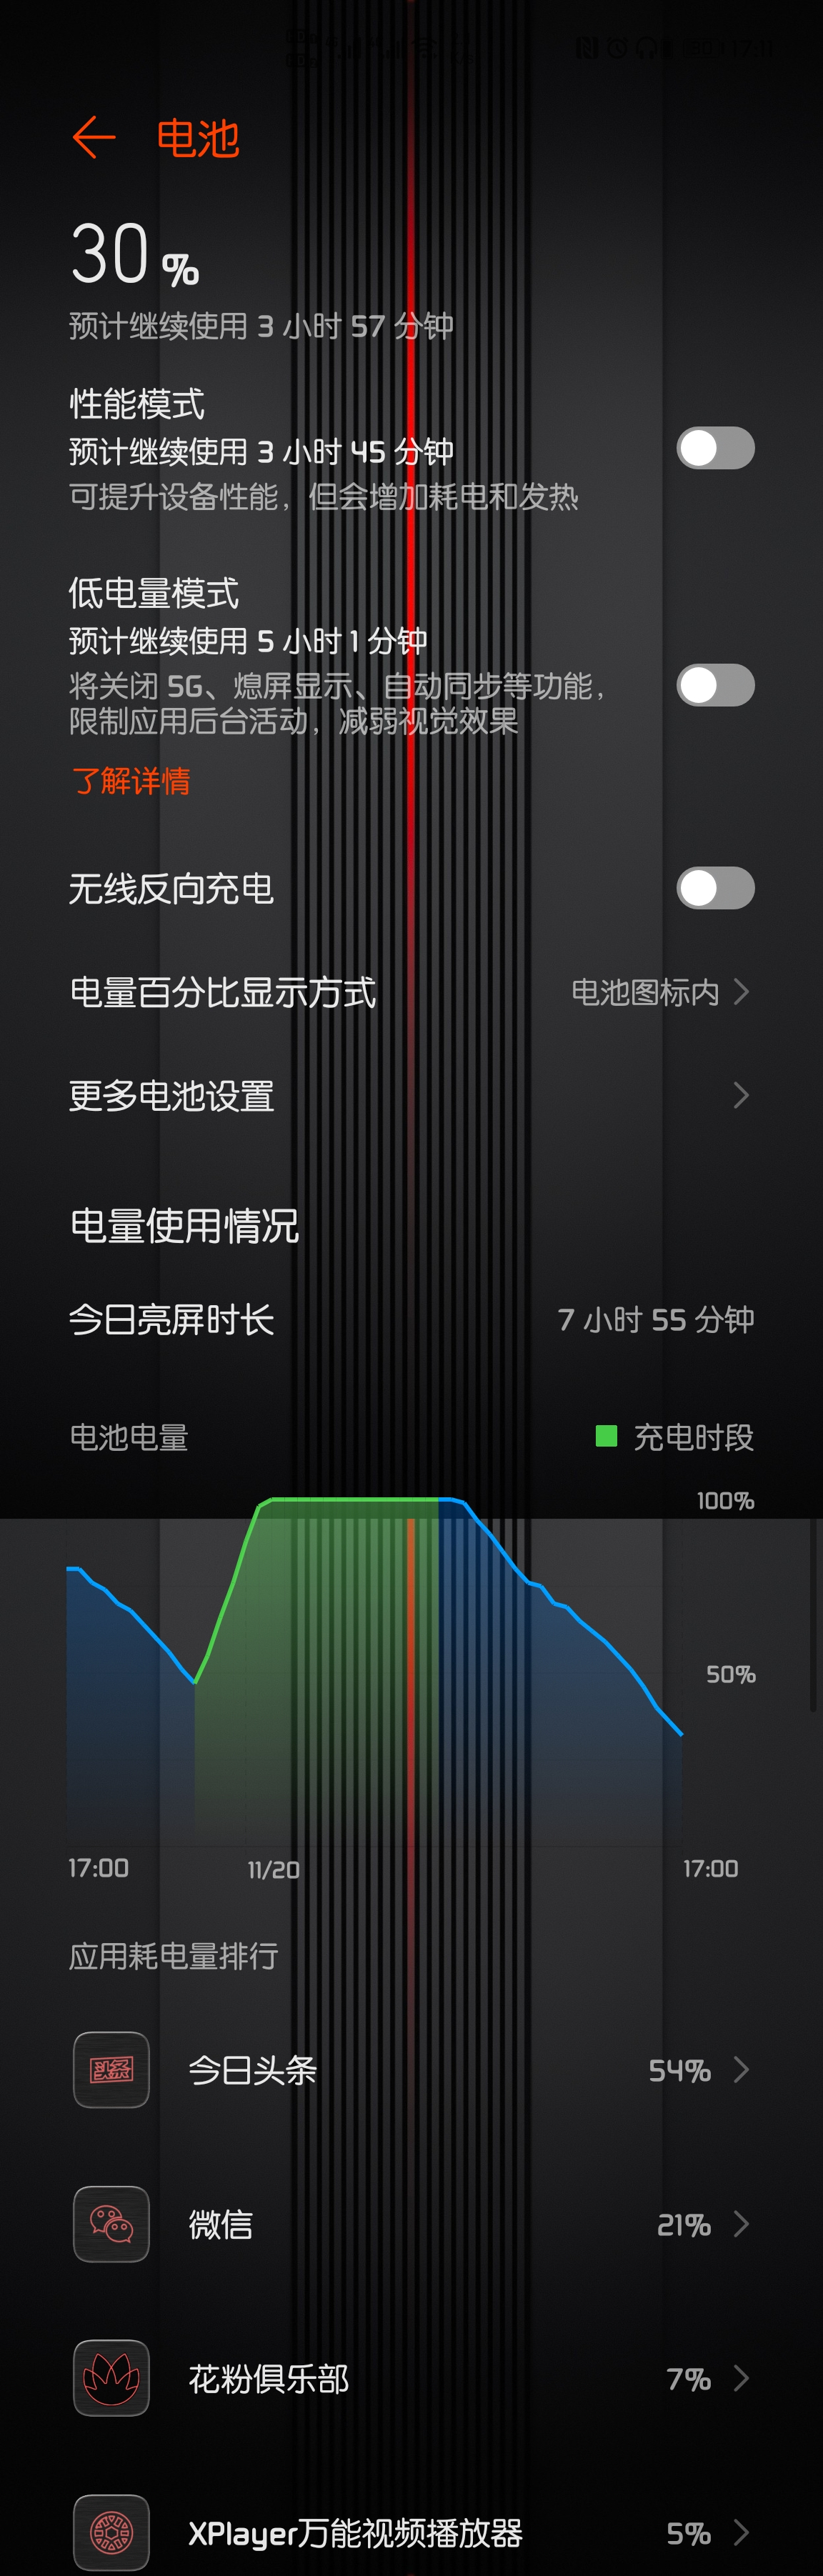 Screenshot_20201120_171138_com.huawei.systemmanager.jpg